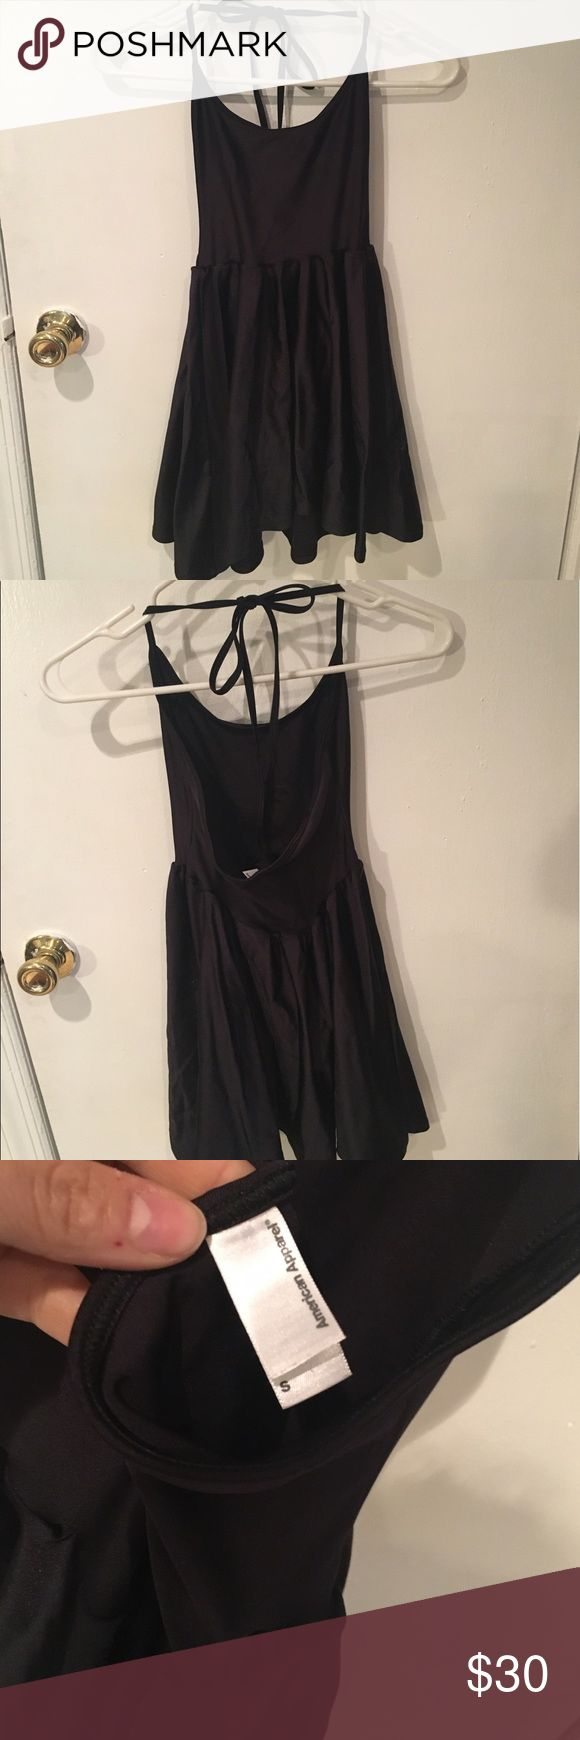 American apparel tie back nylon dress size S American apparel tie back nylon dress size S, worn once. Last chance!! American apparel is closing FOREVER American Apparel Dresses Mini